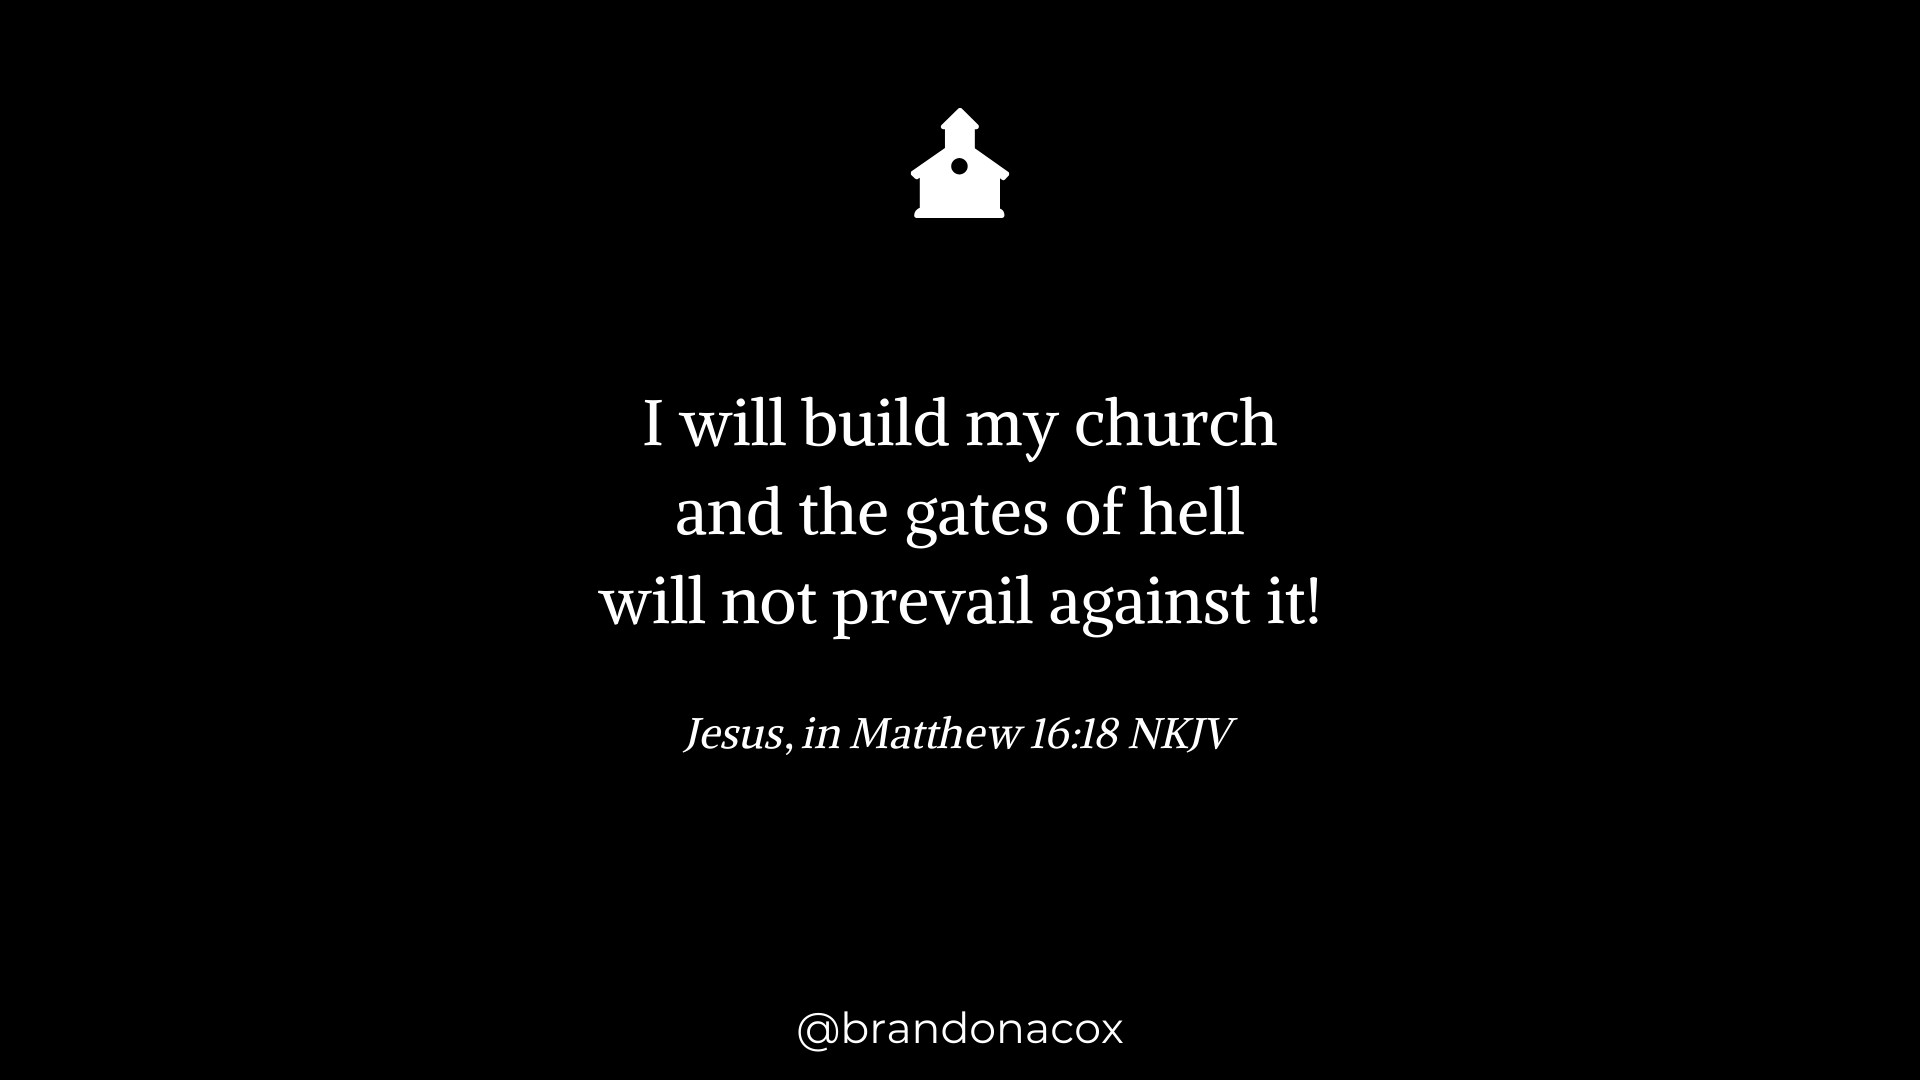 Jesus Is Building His Church